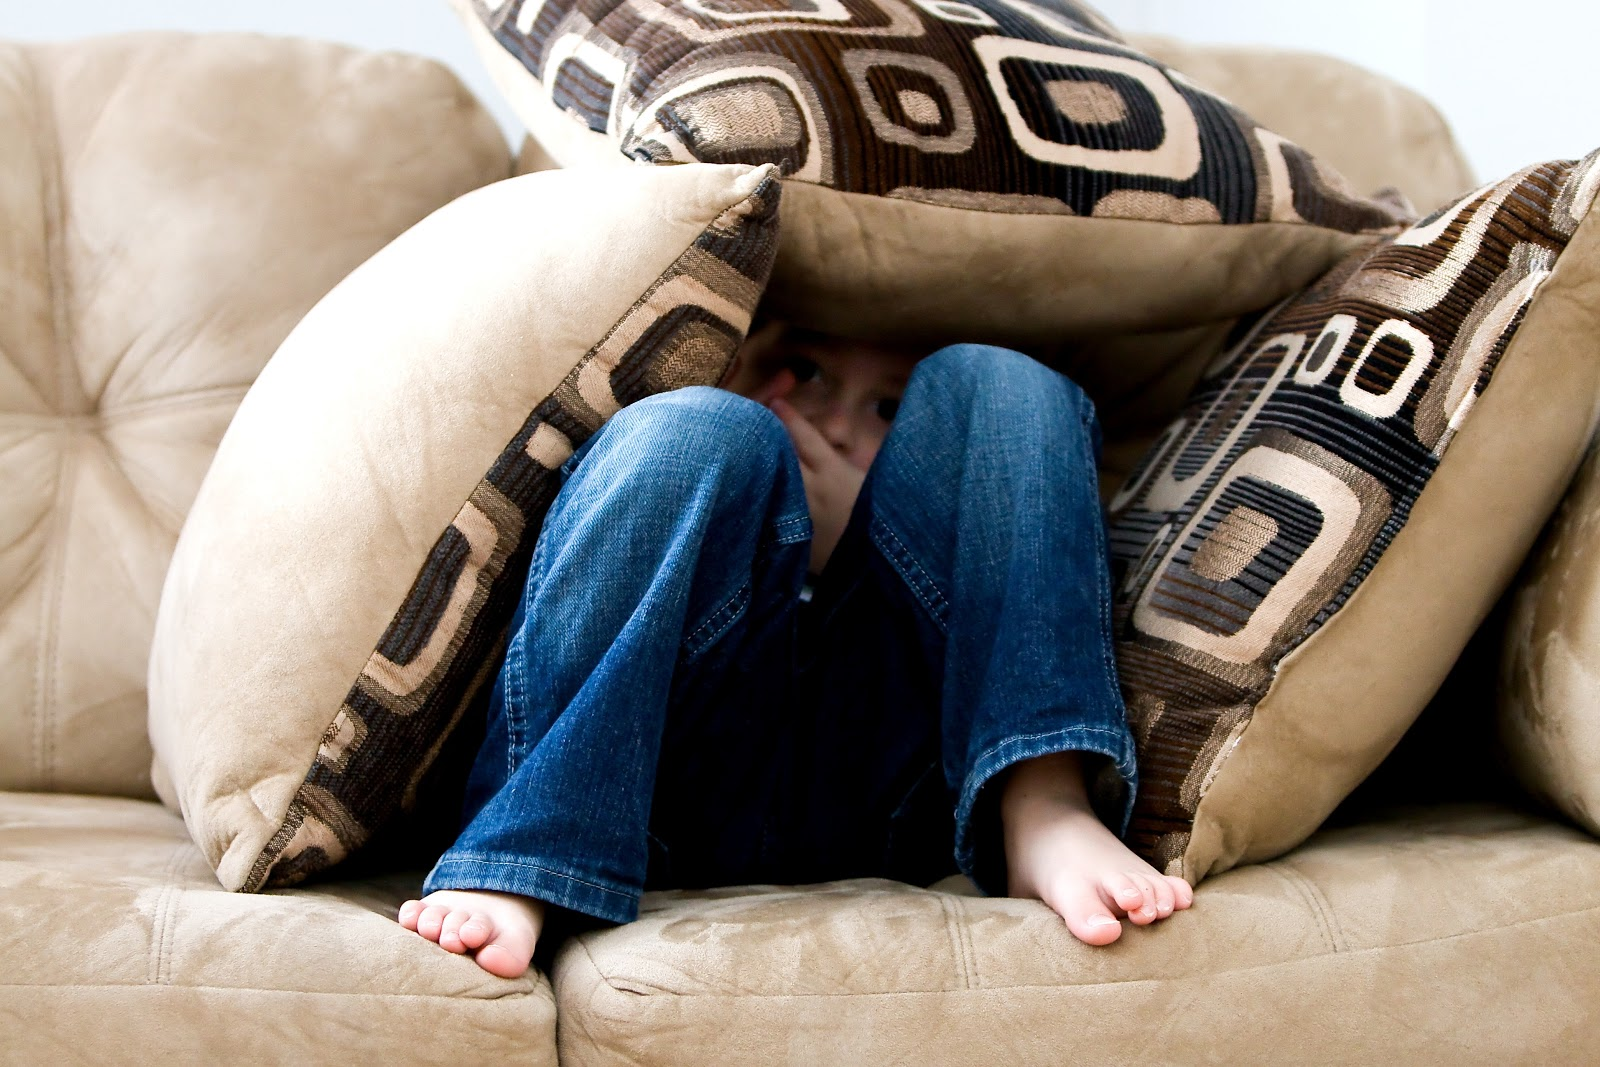 a child is covering himself with cushions